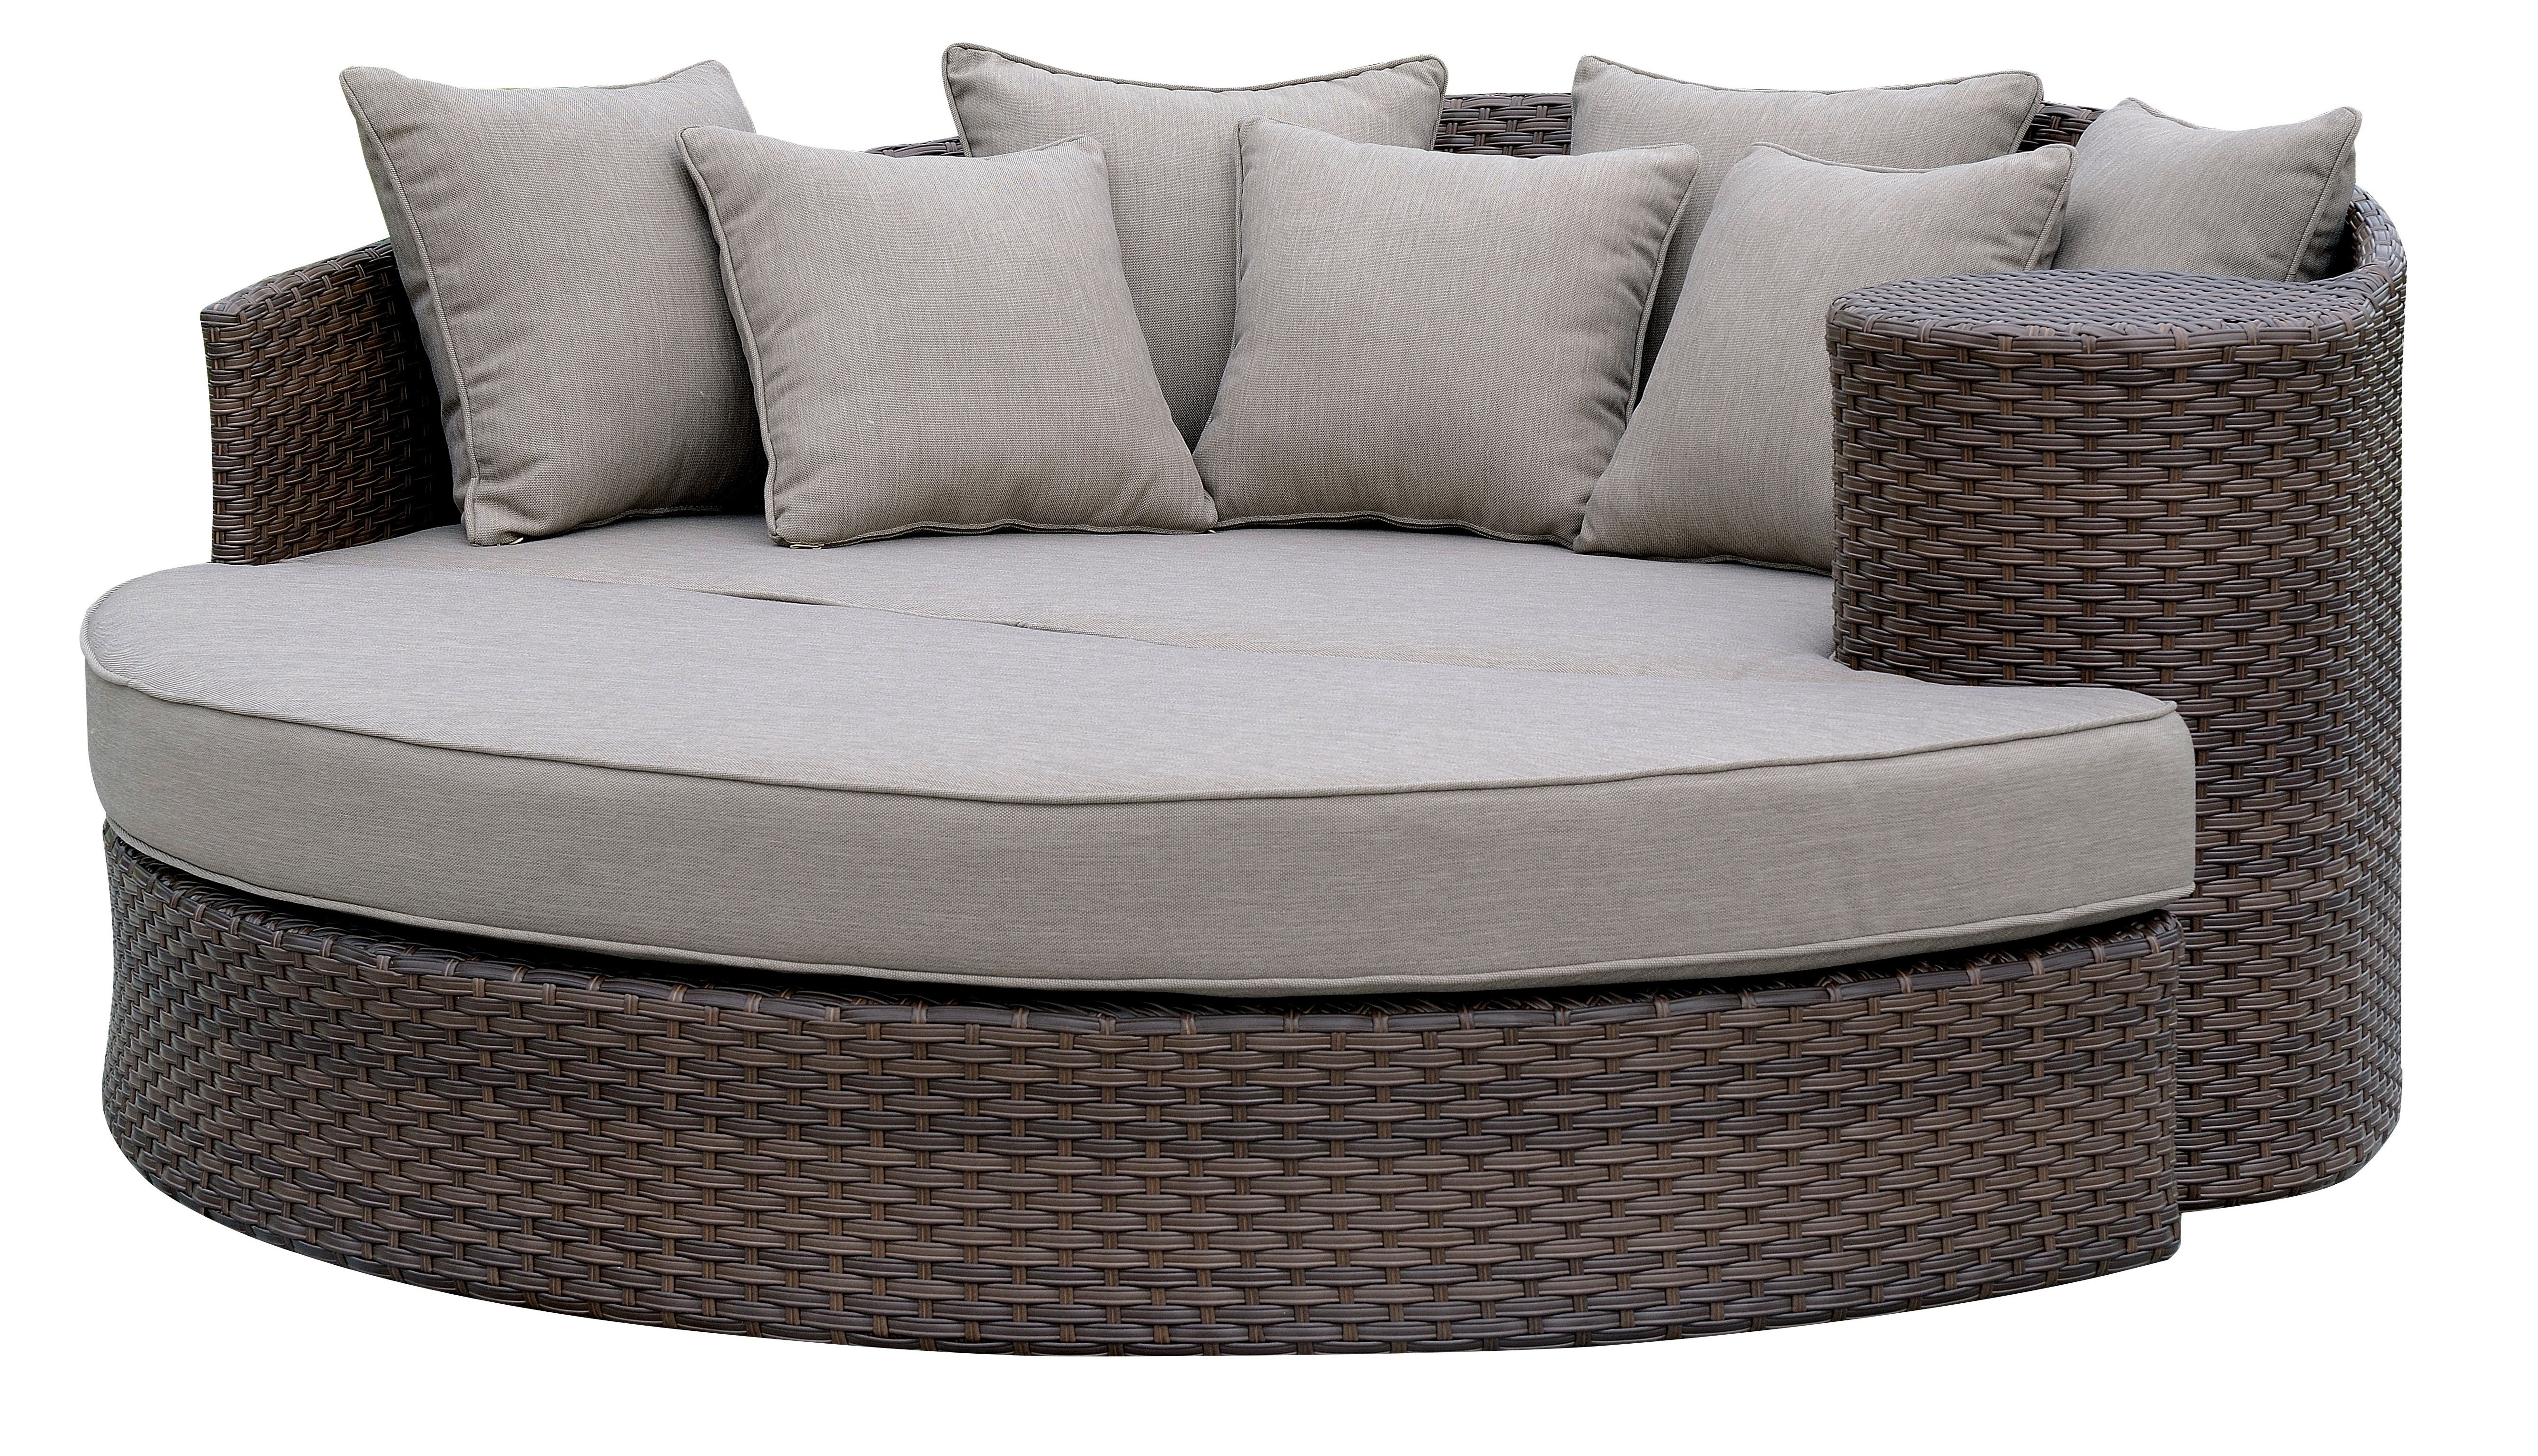 Fansler Patio Daybeds With Cushions In Trendy Whyte Contemporary Patio Daybed With Cushions (View 7 of 20)